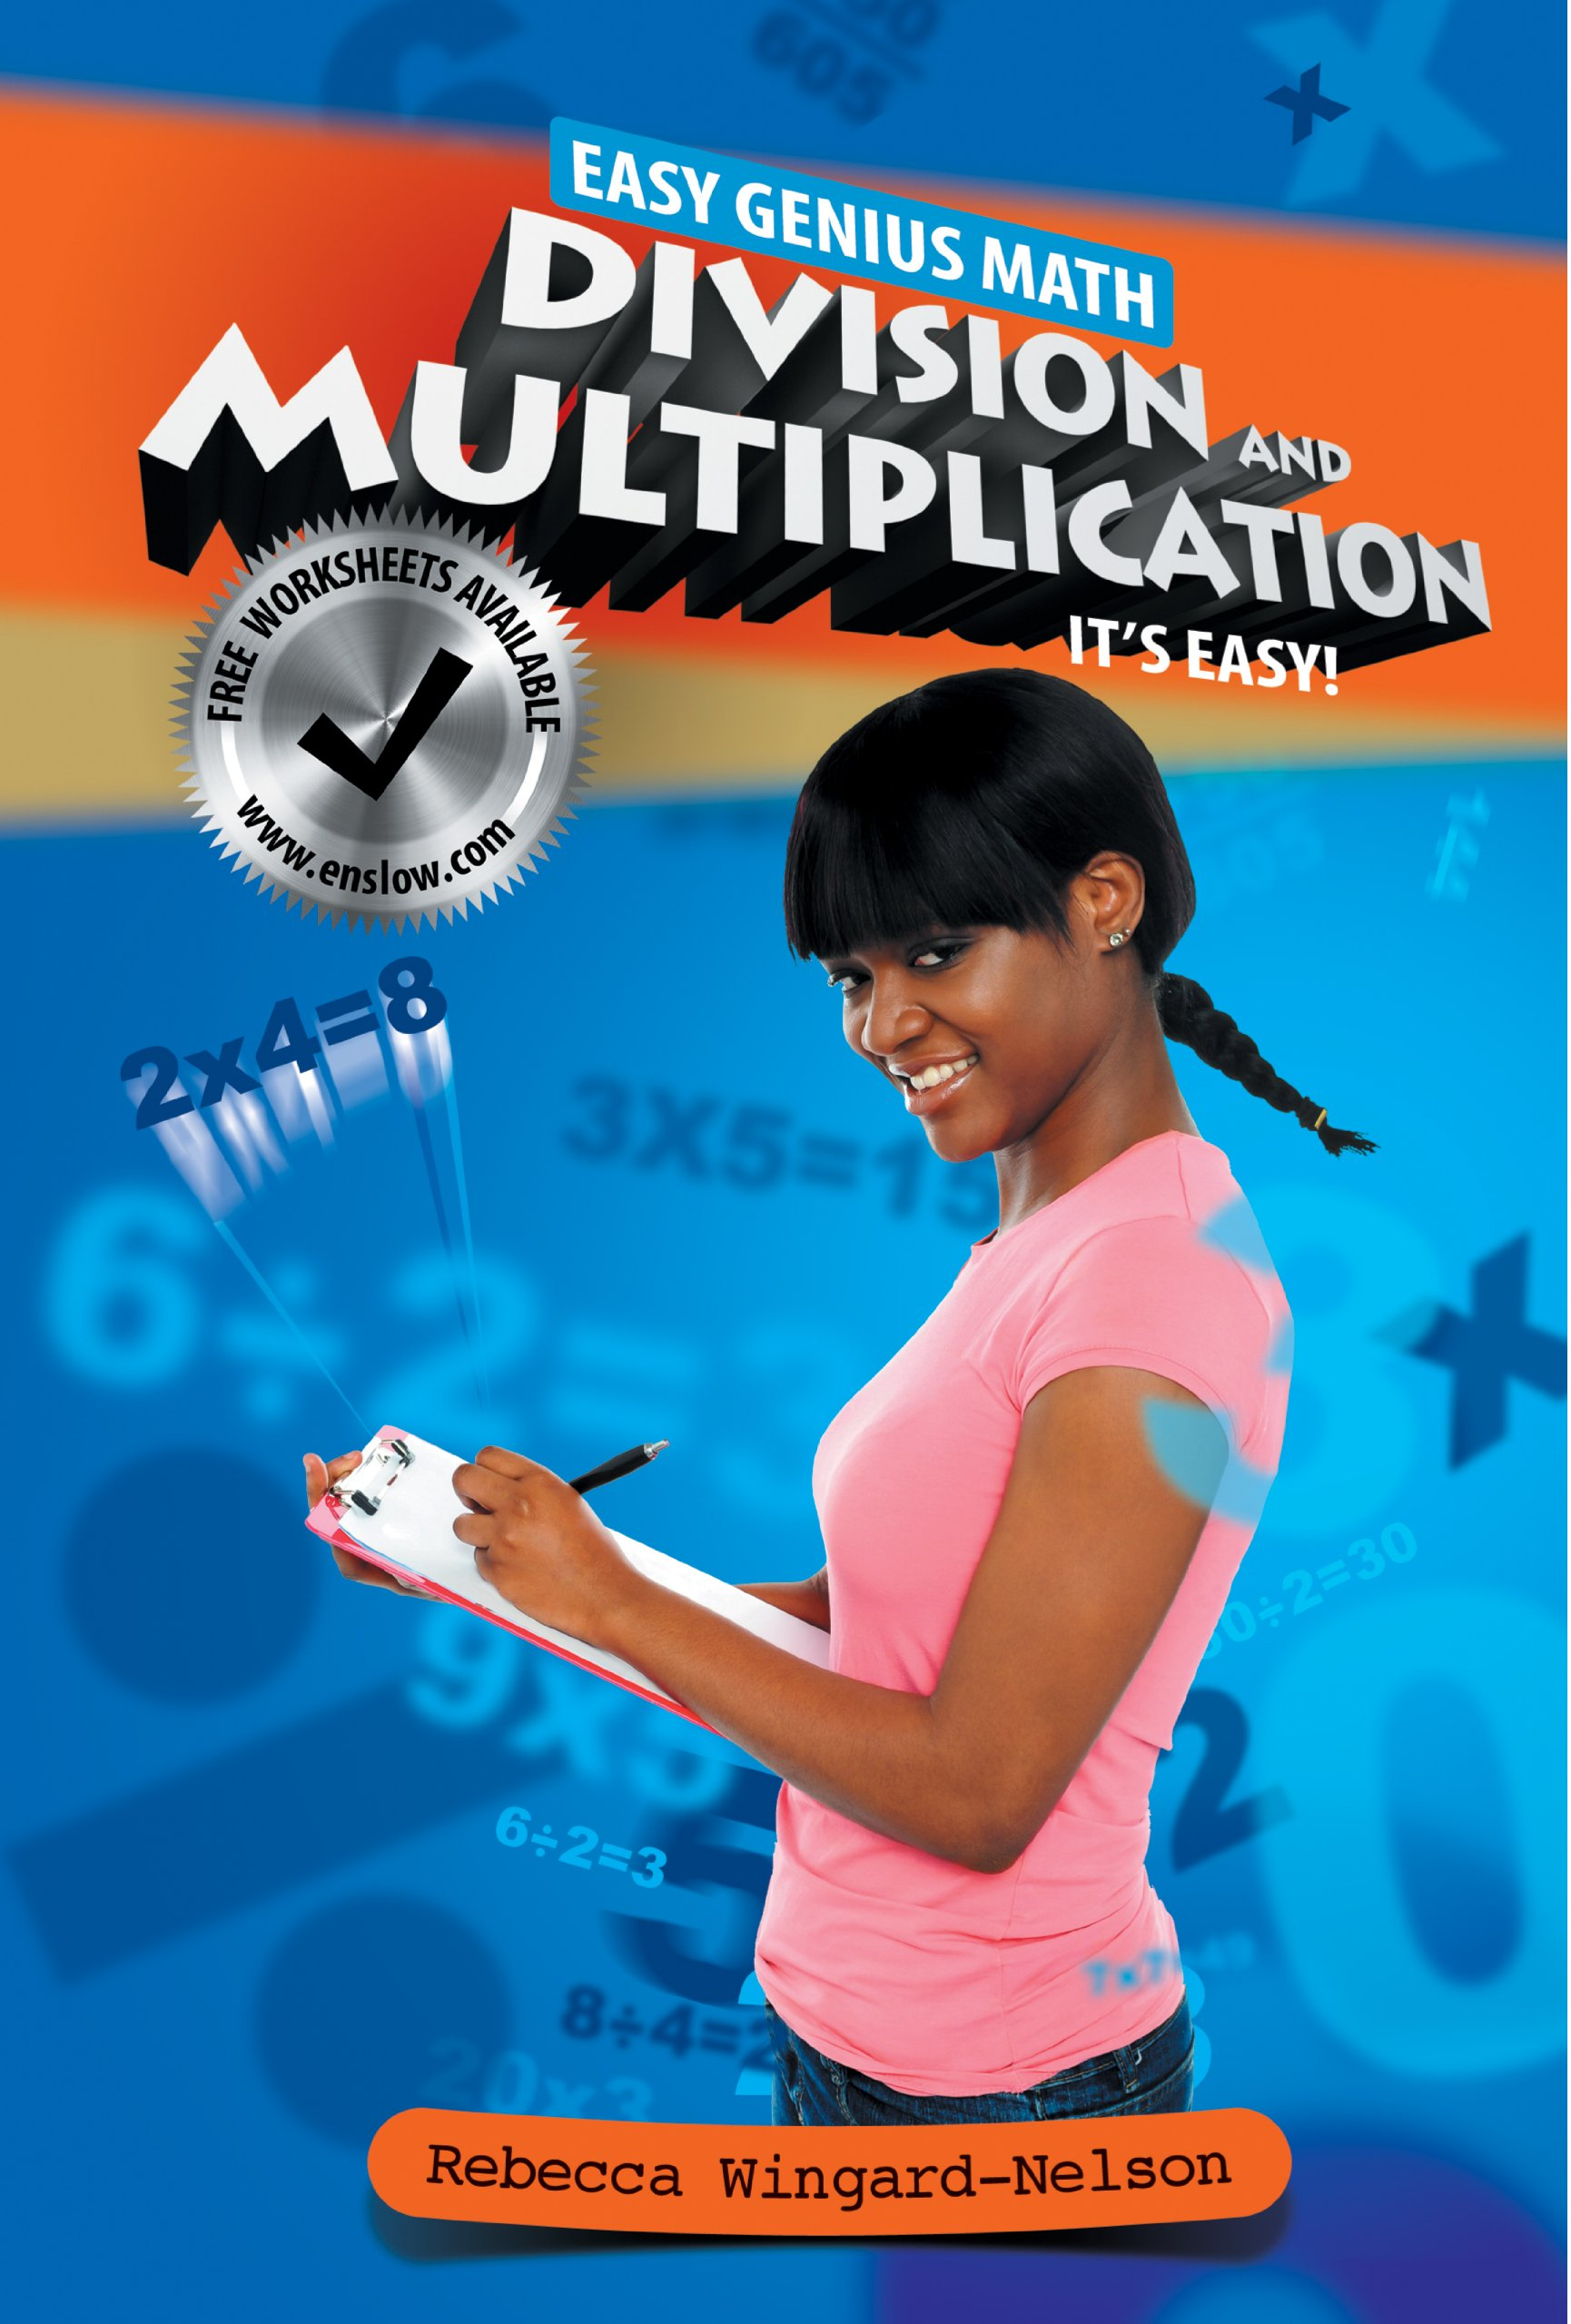 Division and Multiplication: It's Easy (Easy Genius Math)